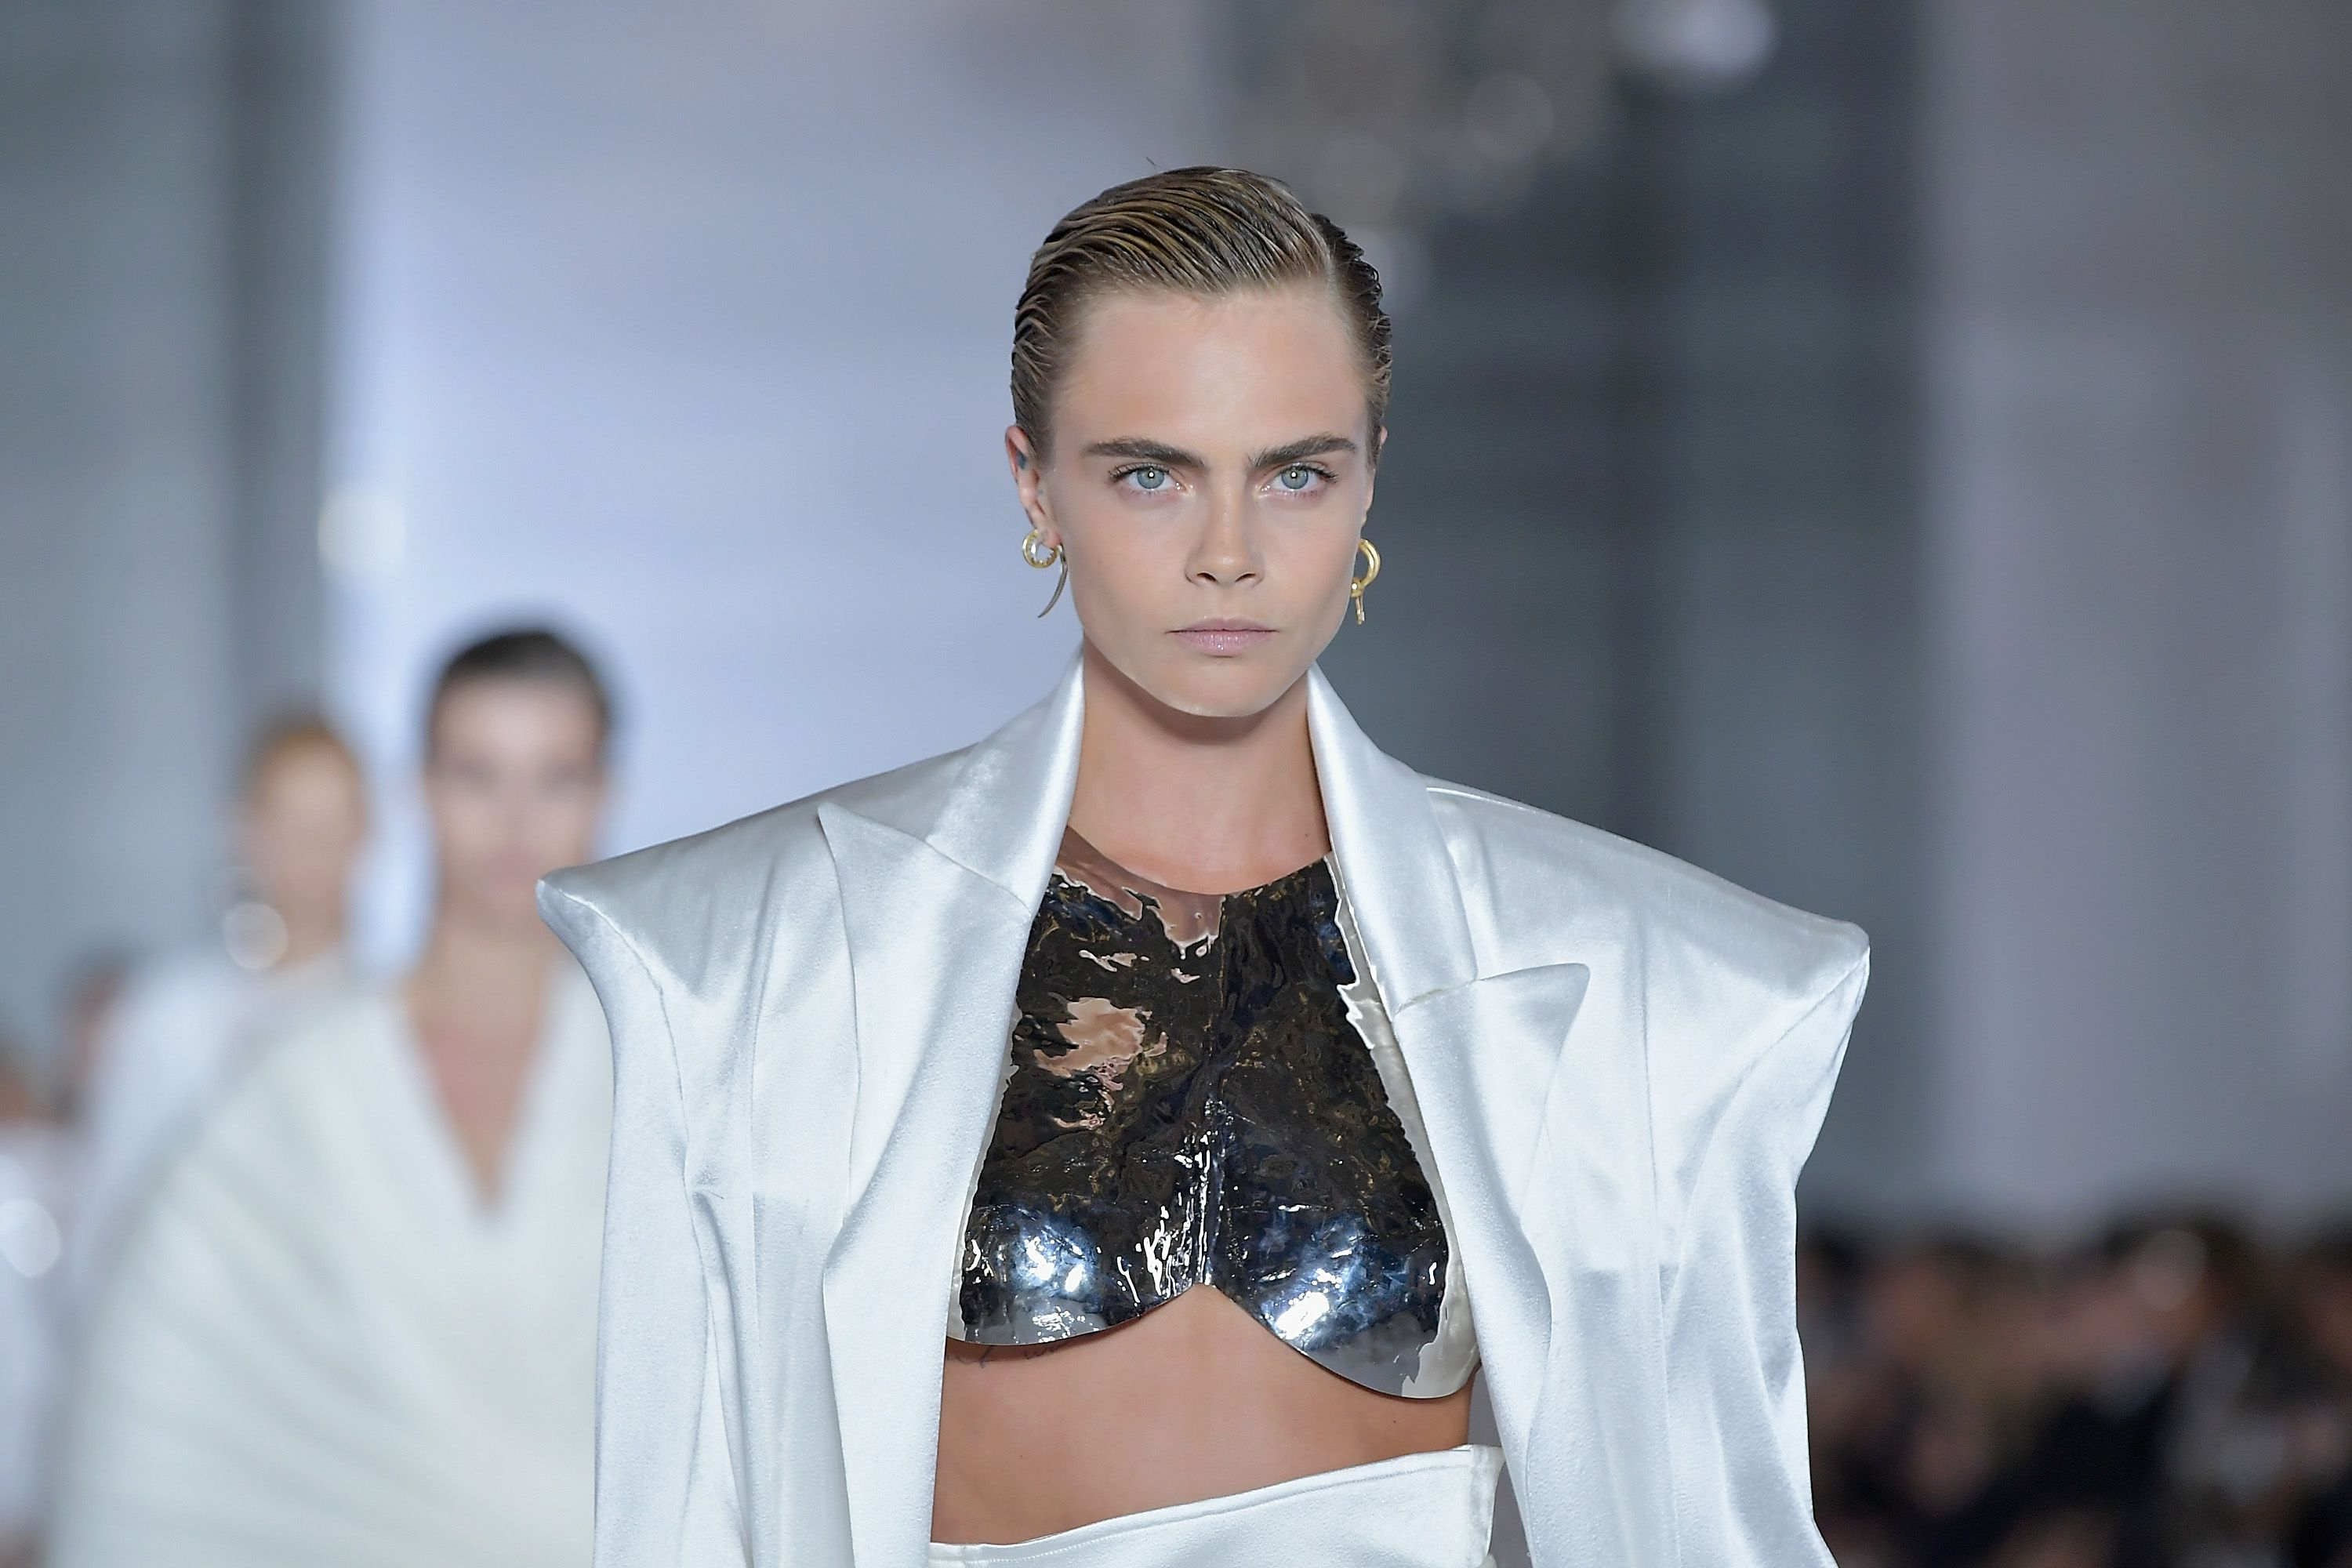 bd47451447 Cara Delevingne gets naked for Balmain campaign video